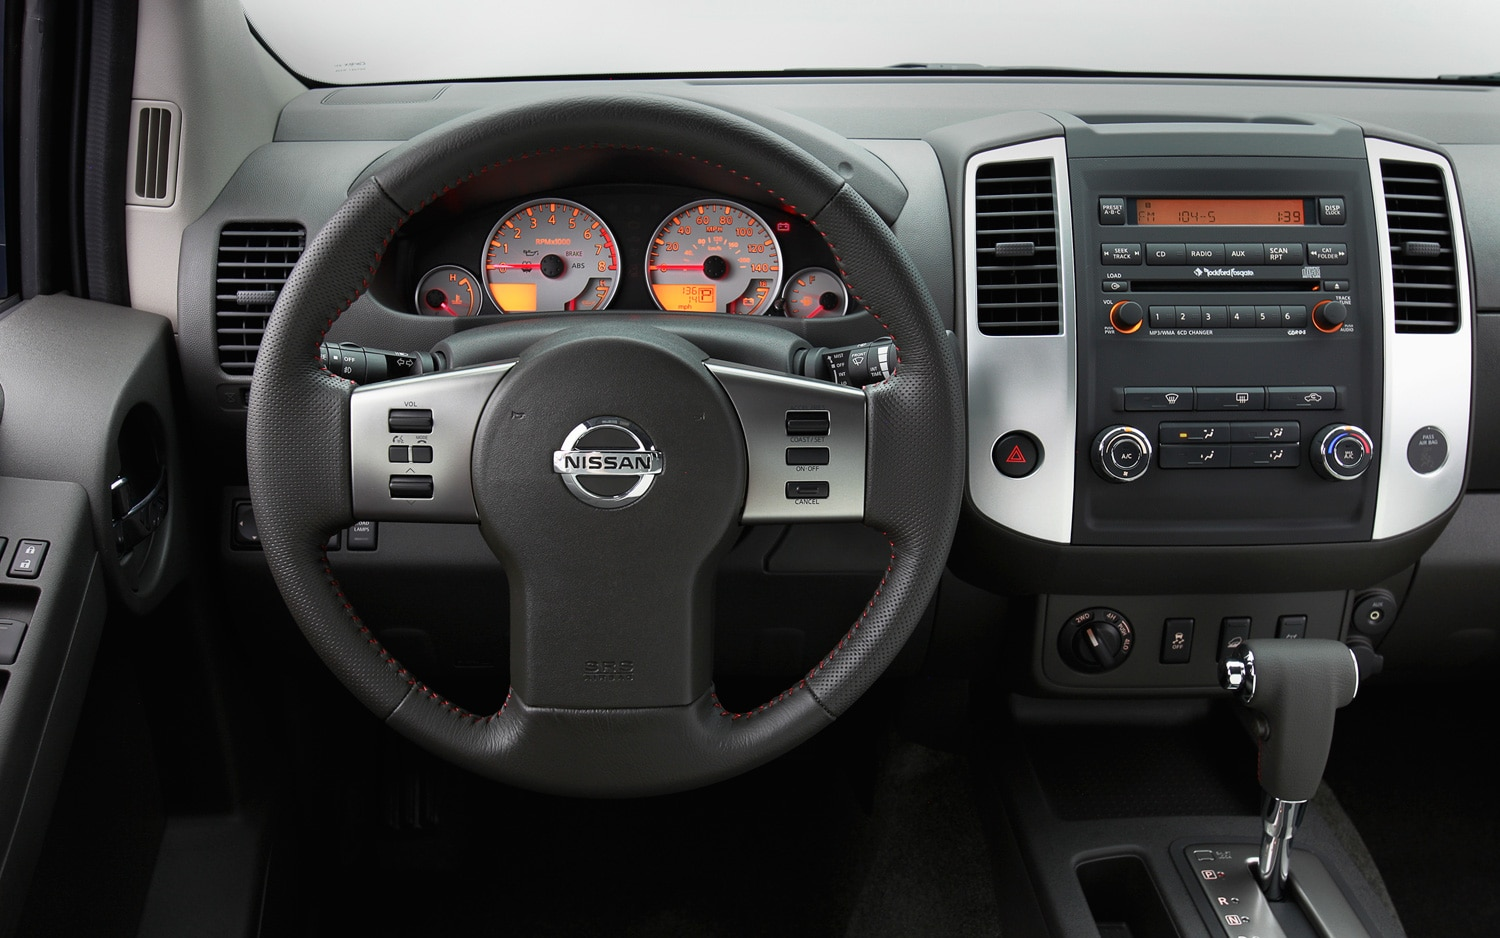 2012 Nissan Xterra Steering Wheel